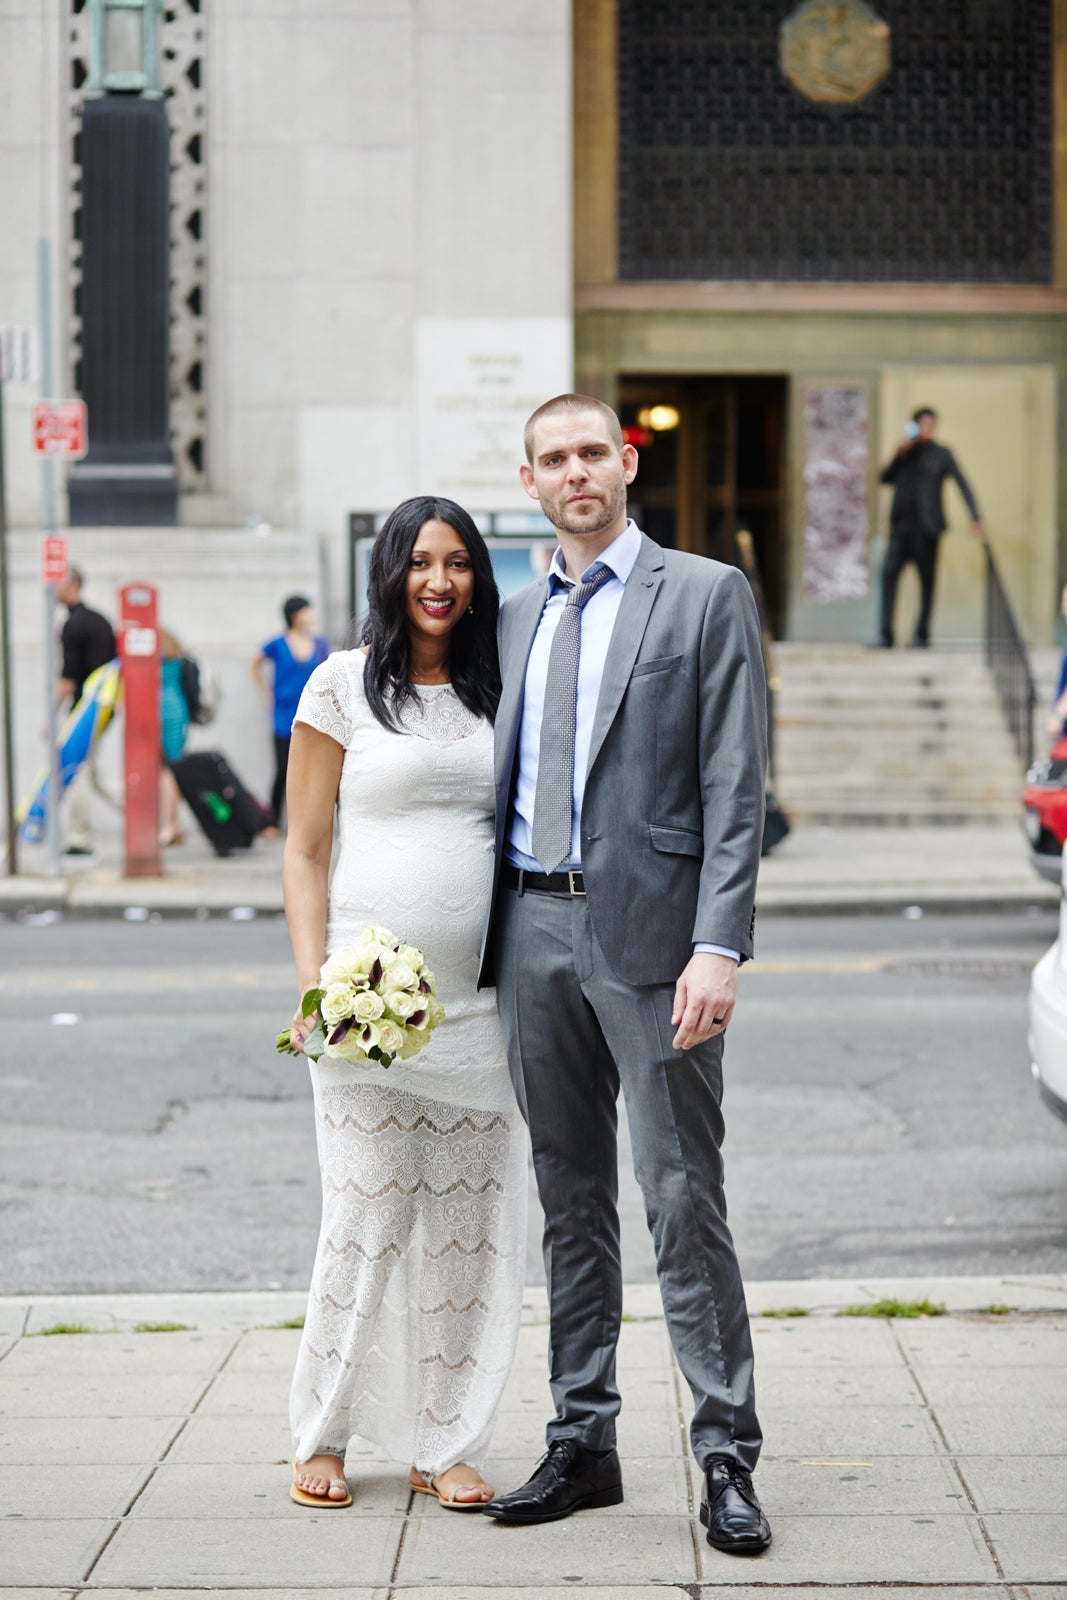 courthouse wedding dress courthouse wedding dresses city hall wedding outfits casual bridal gowns